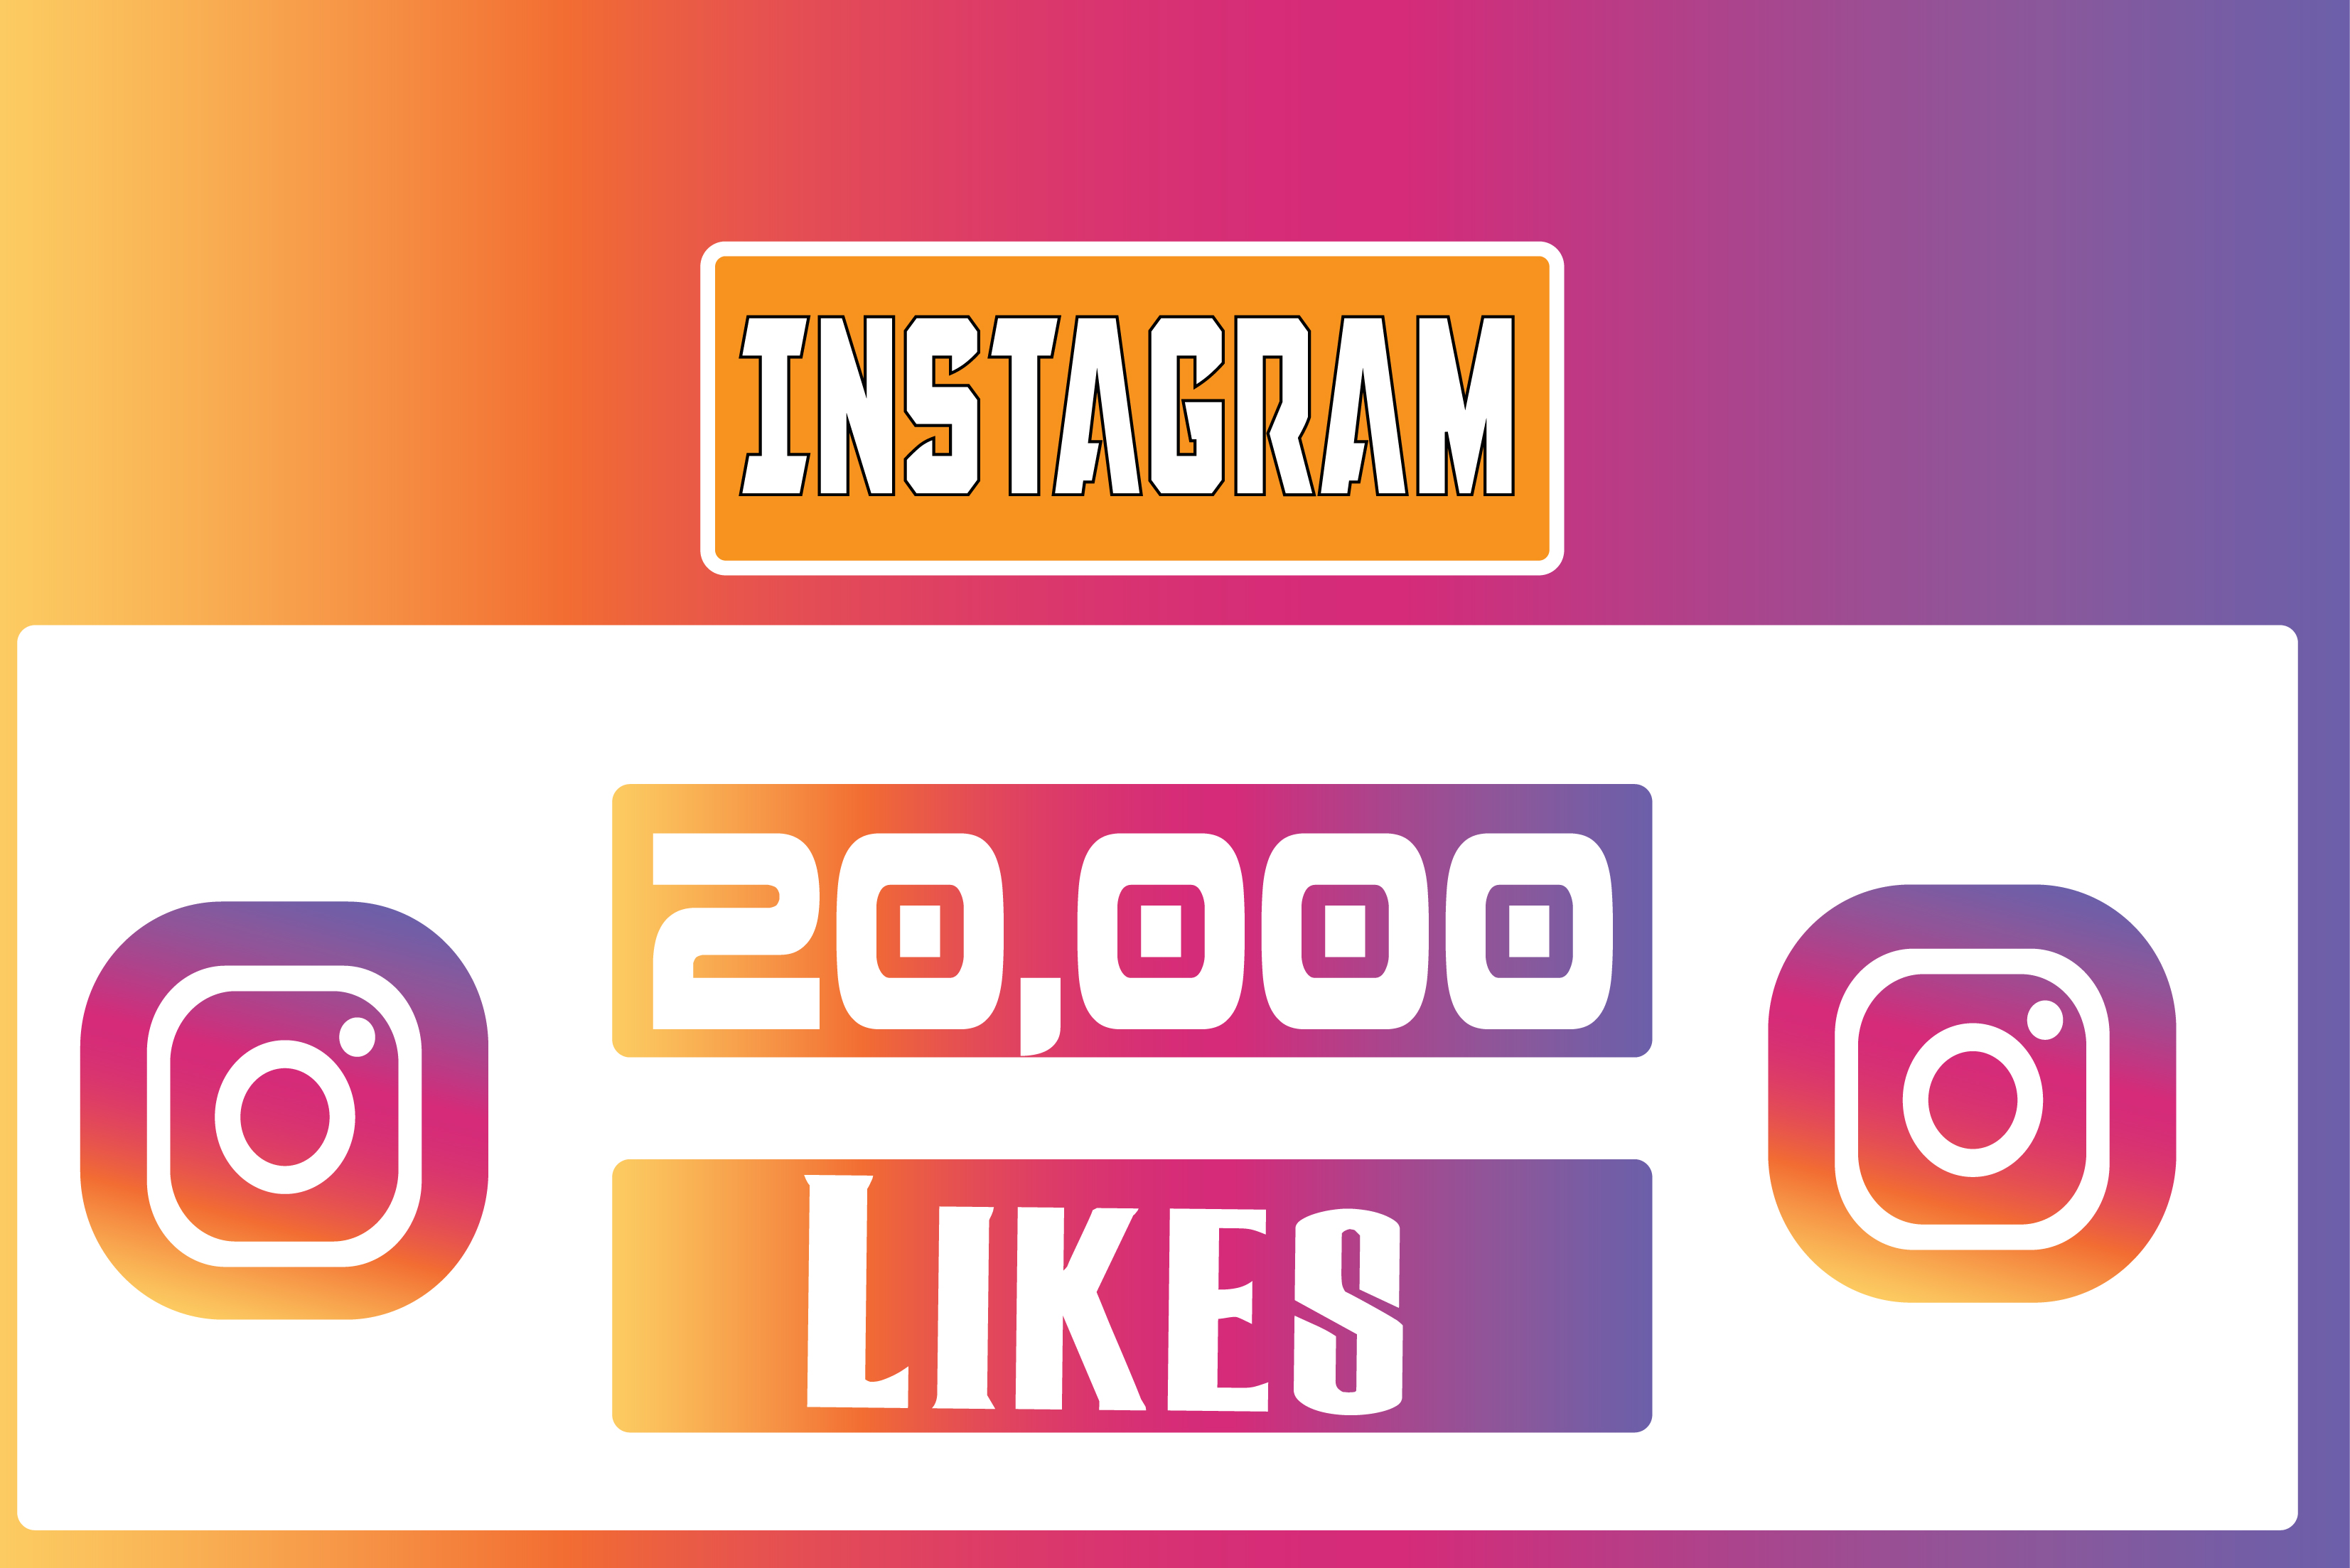 20,000 Instagram Picture Like, Non Droop (Split-able